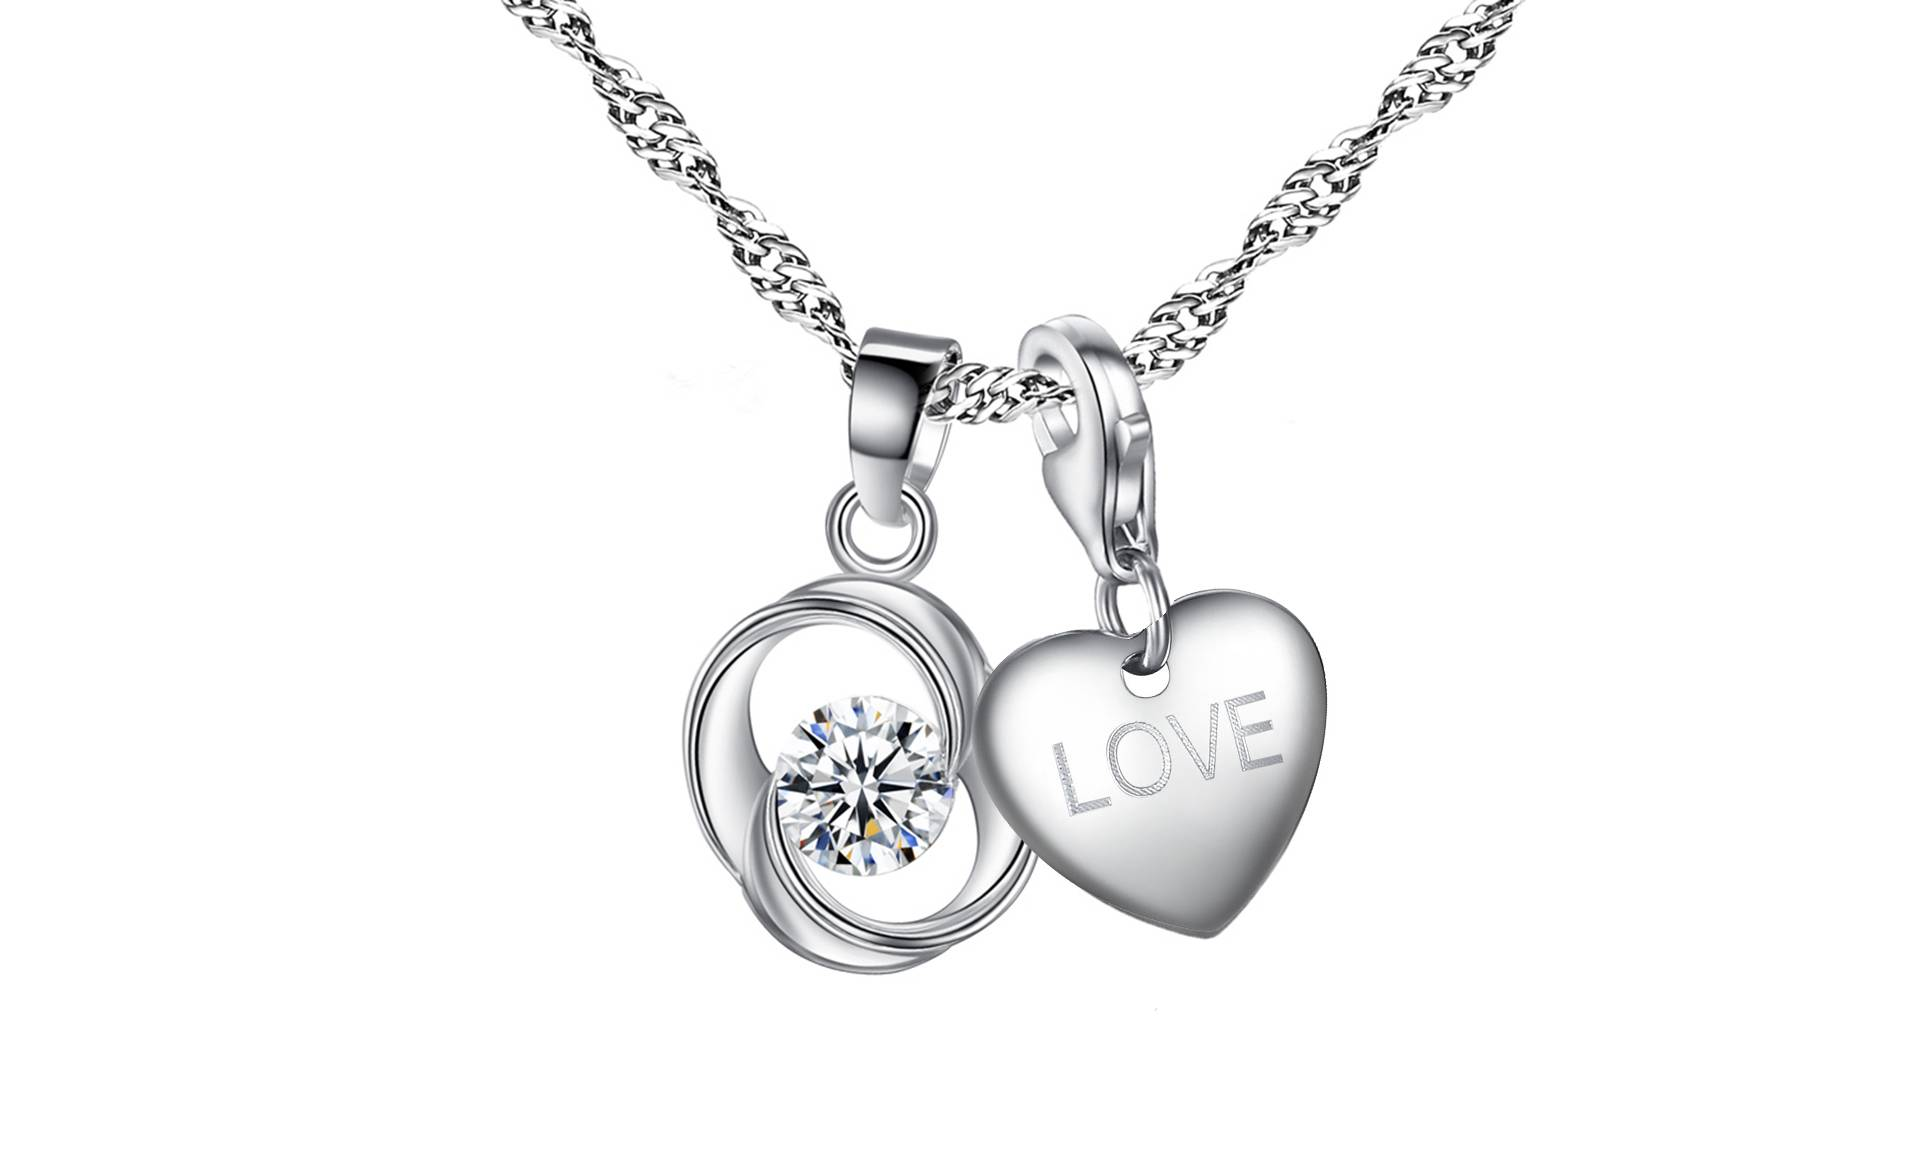 Groupon Goods Jewellery Set with Crystals: Love